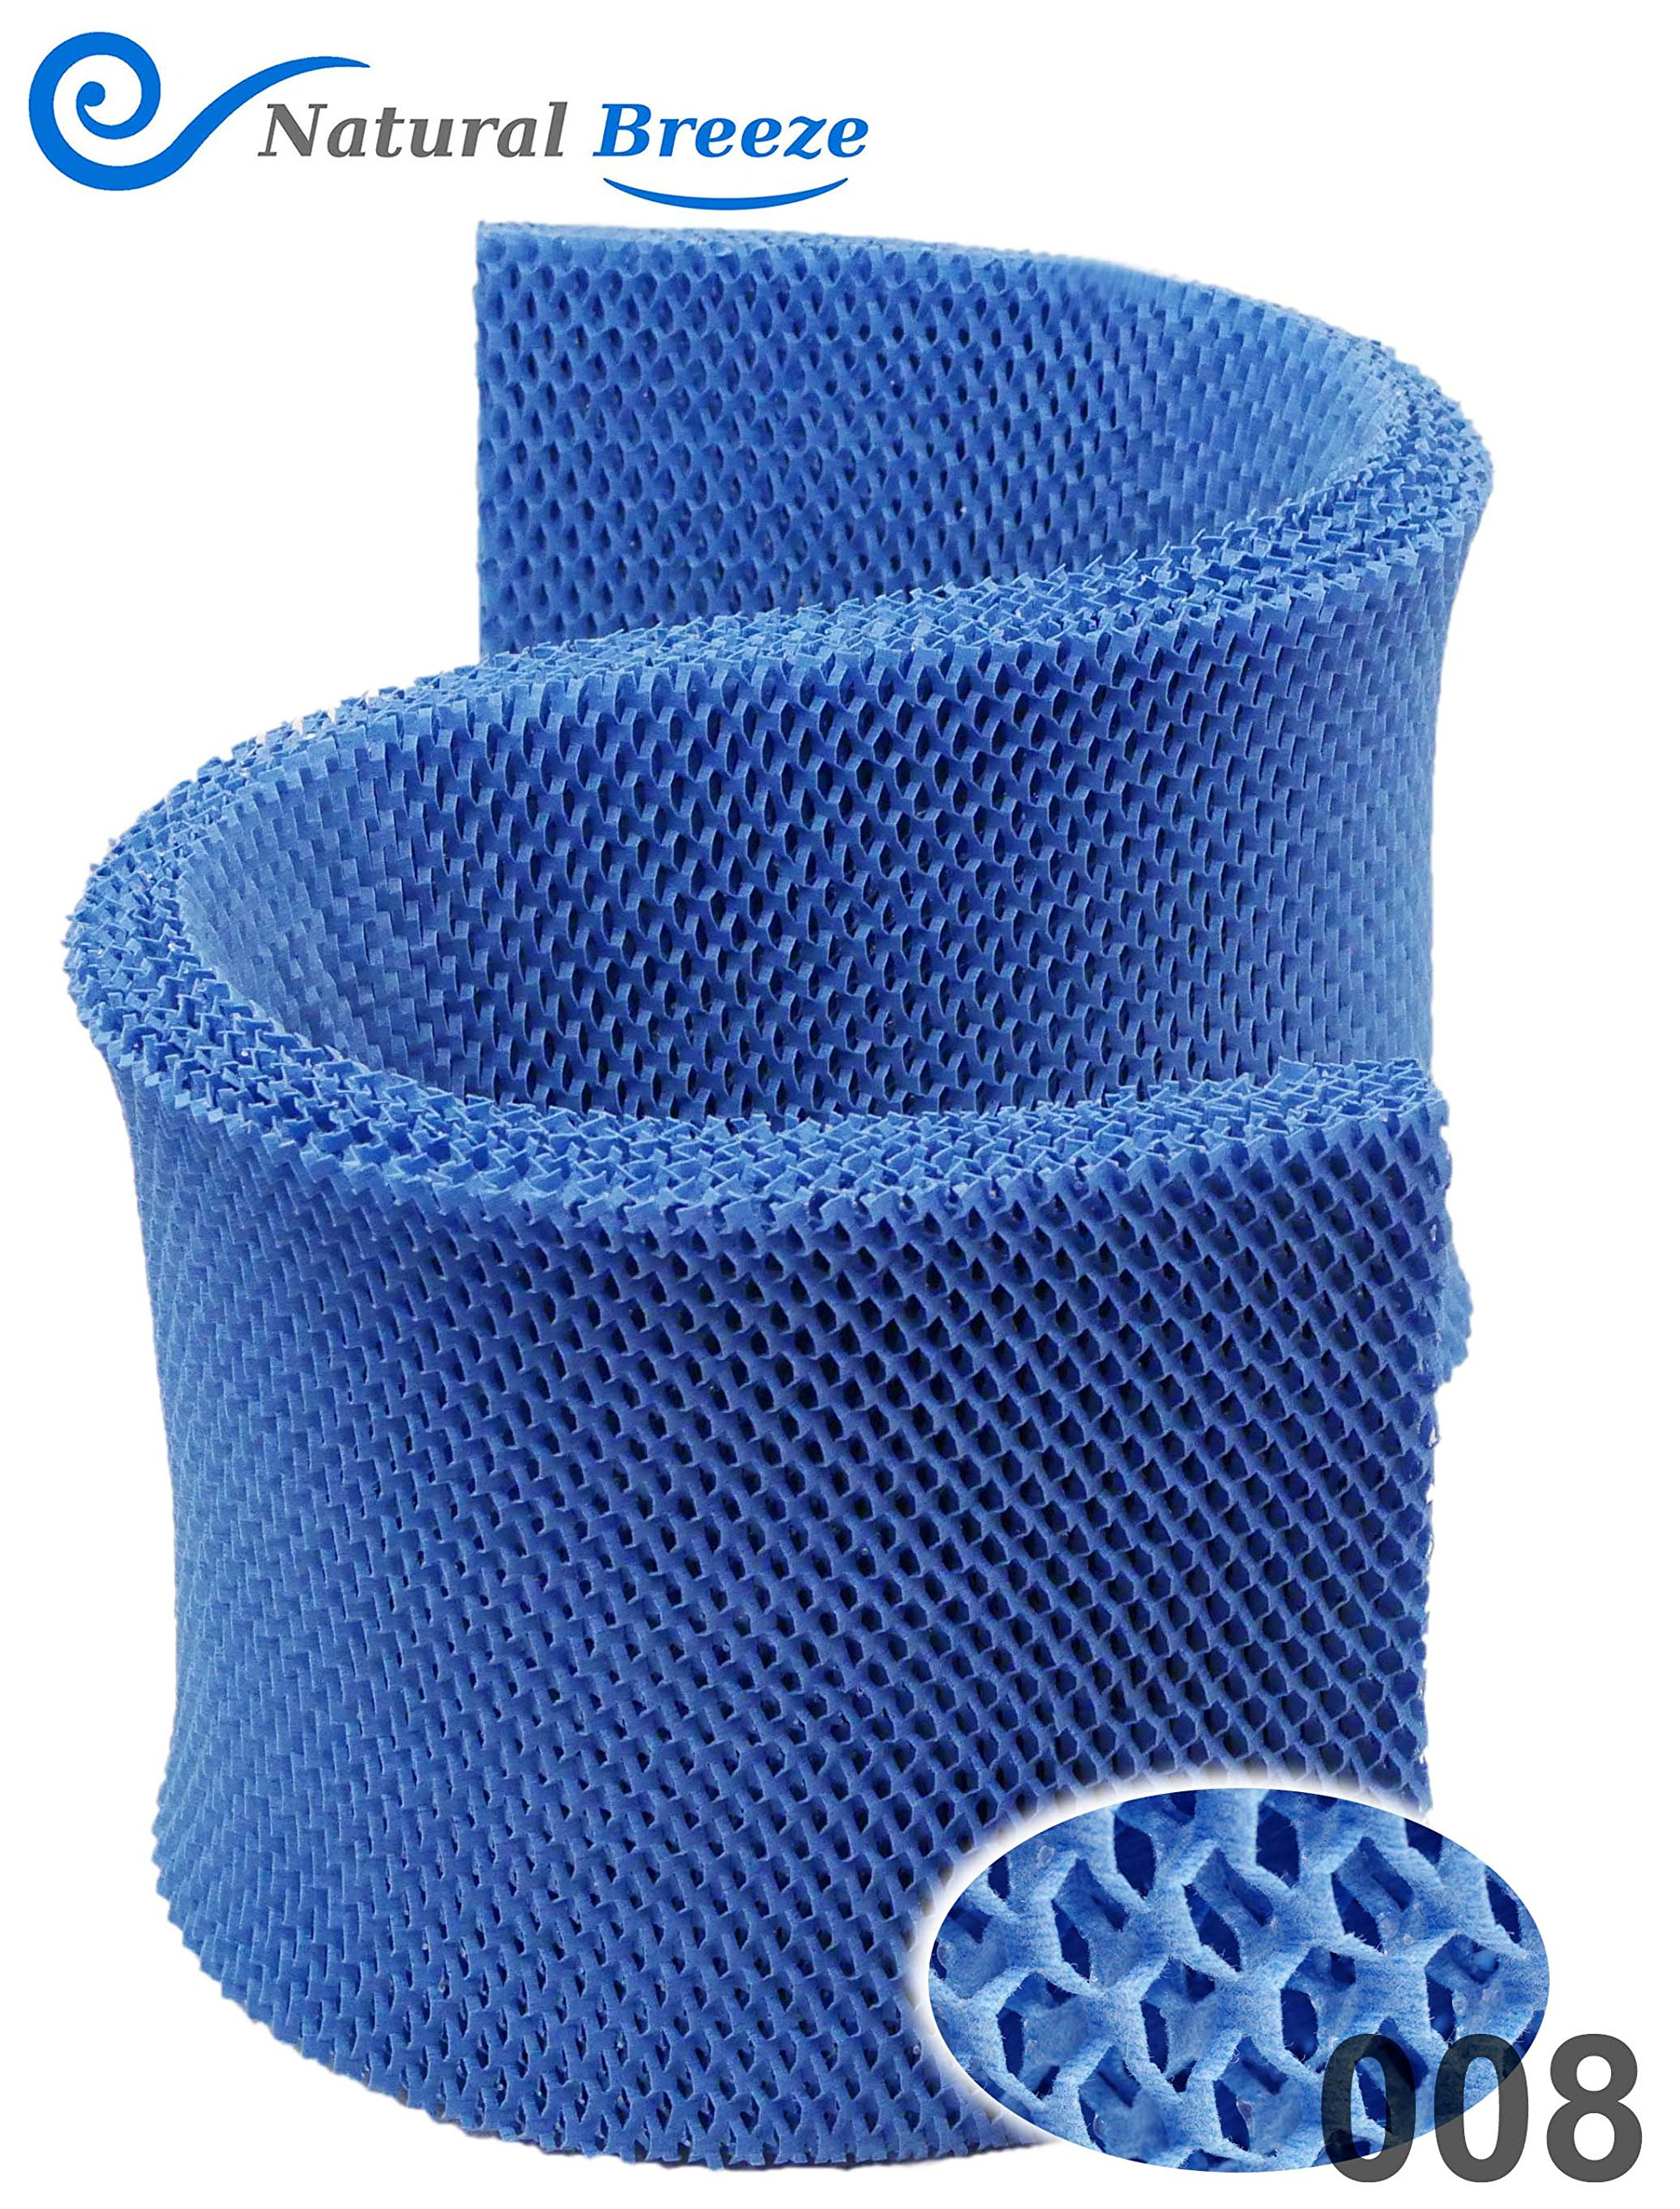 New Reusable Universal Humidifier Filter HM850 WWHM300 SFU003 Replacement Cool Mist Reusable Filter